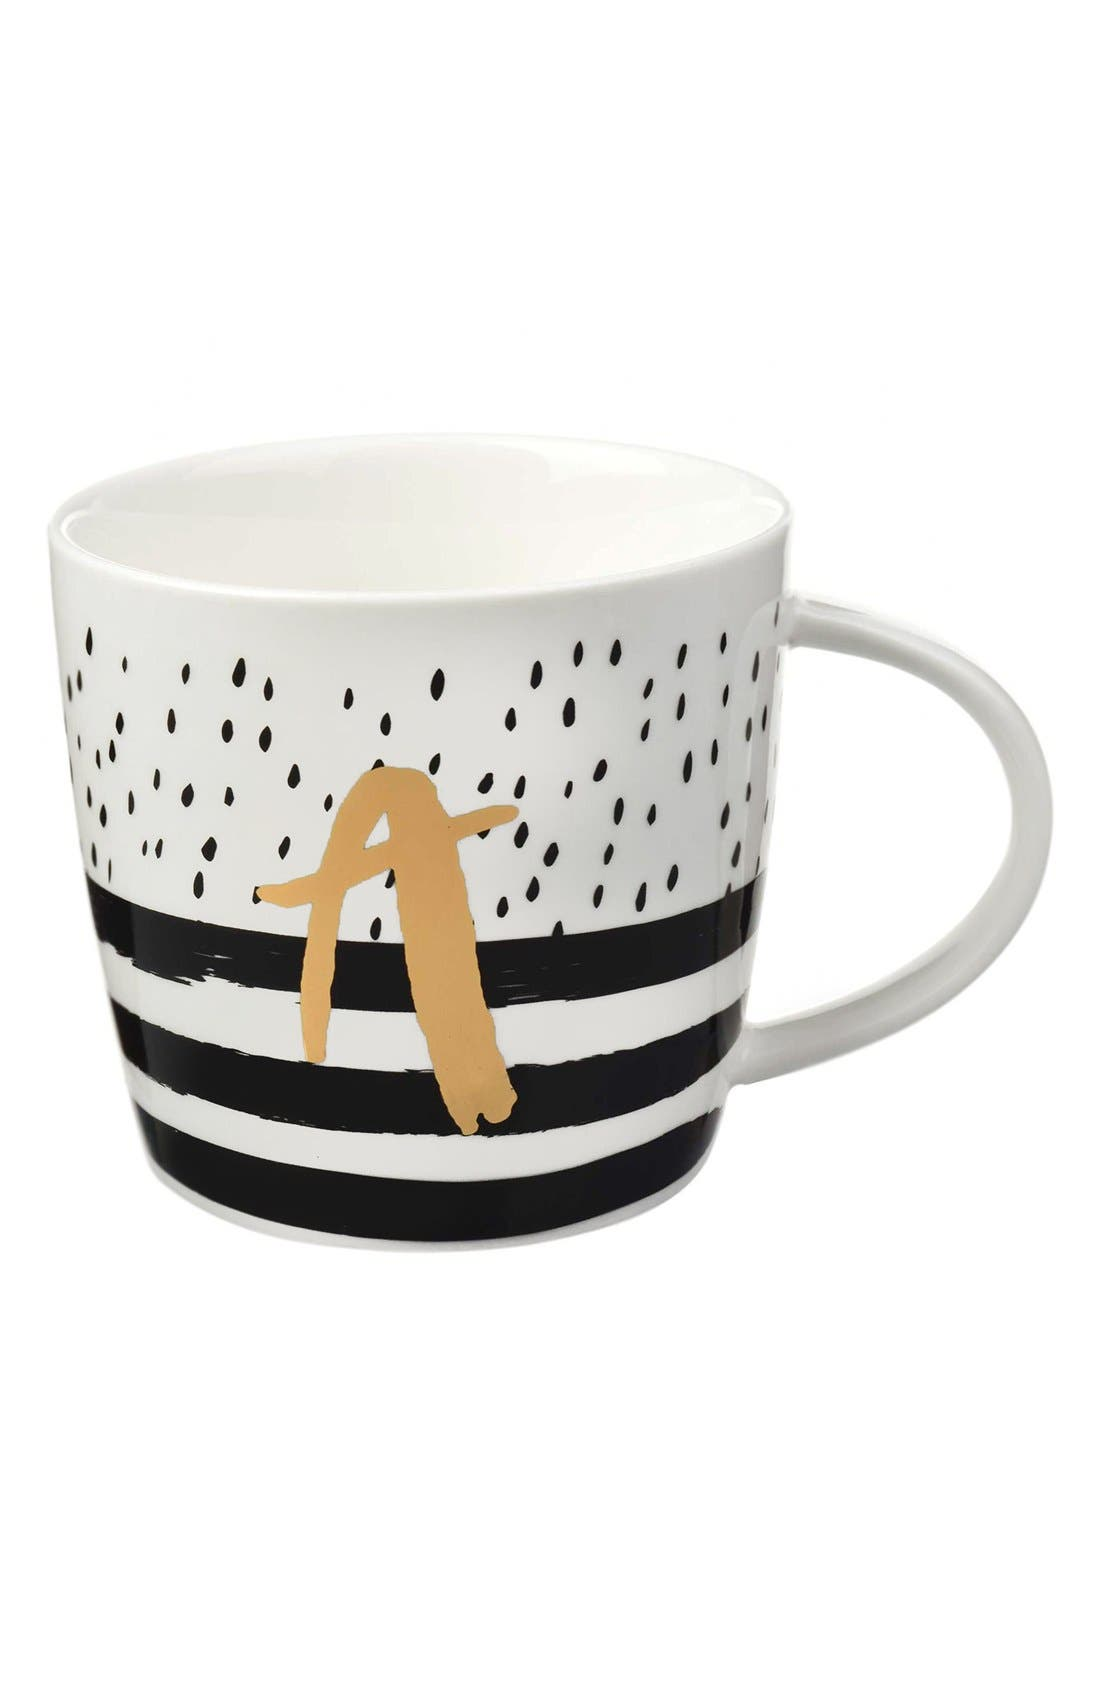 Monogram Mug,                         Main,                         color, 100